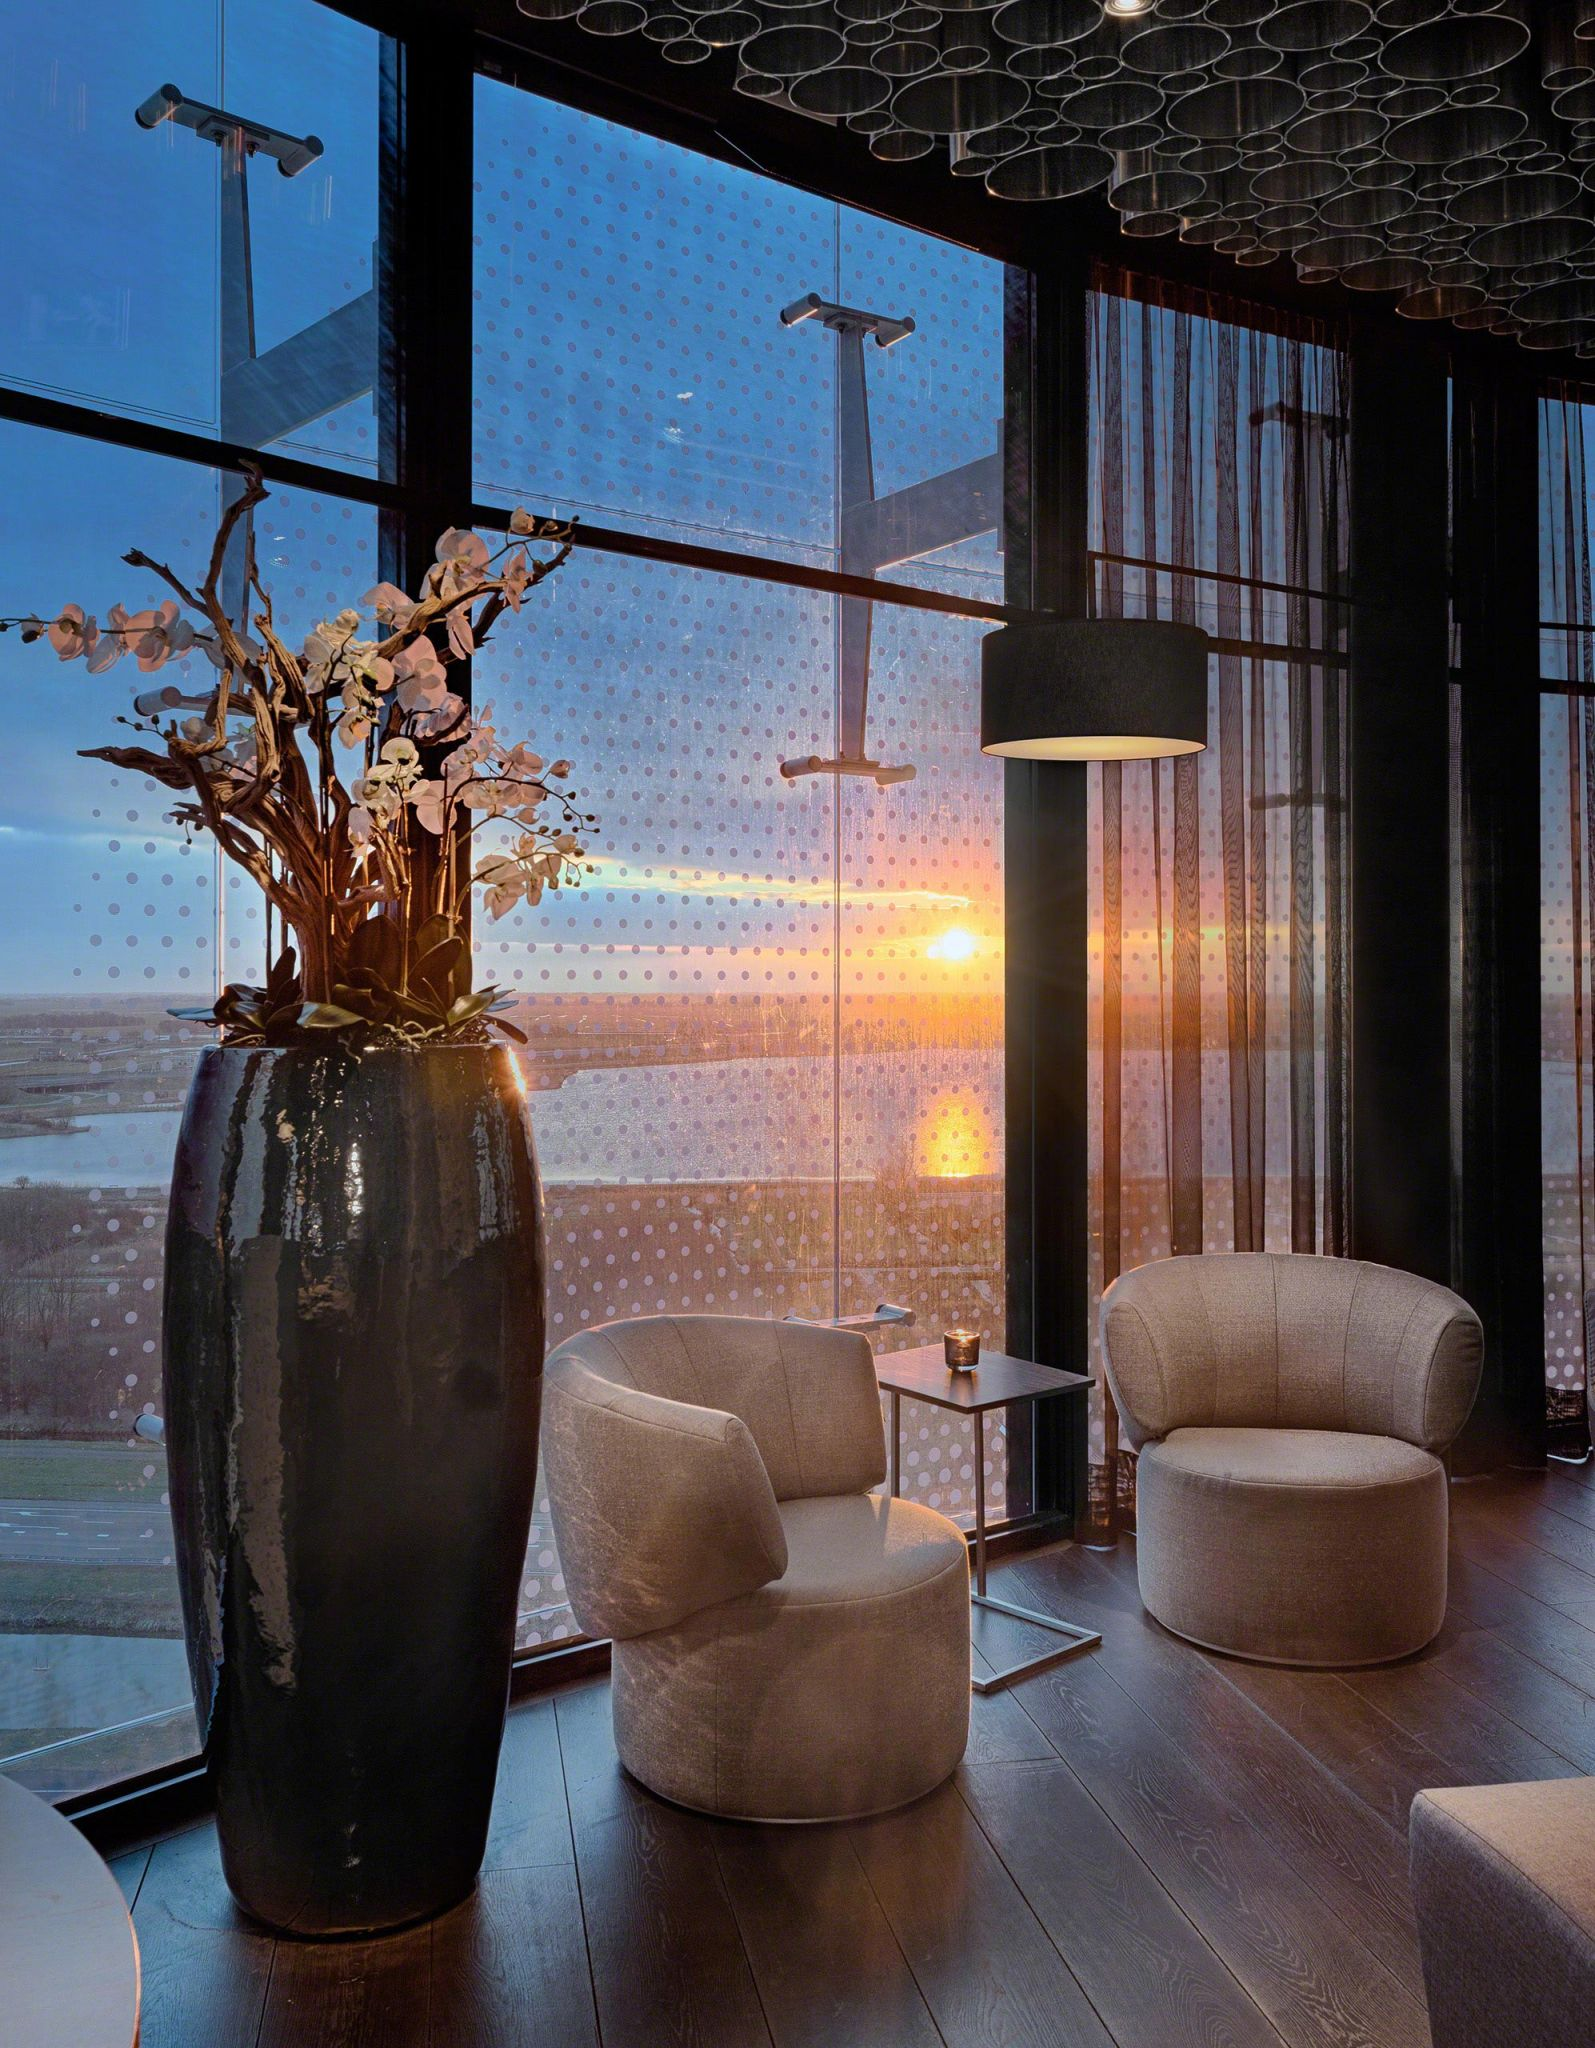 At sunset, the sky bar's hospitality design provides the ultimate backdrop for a drink or dinner.